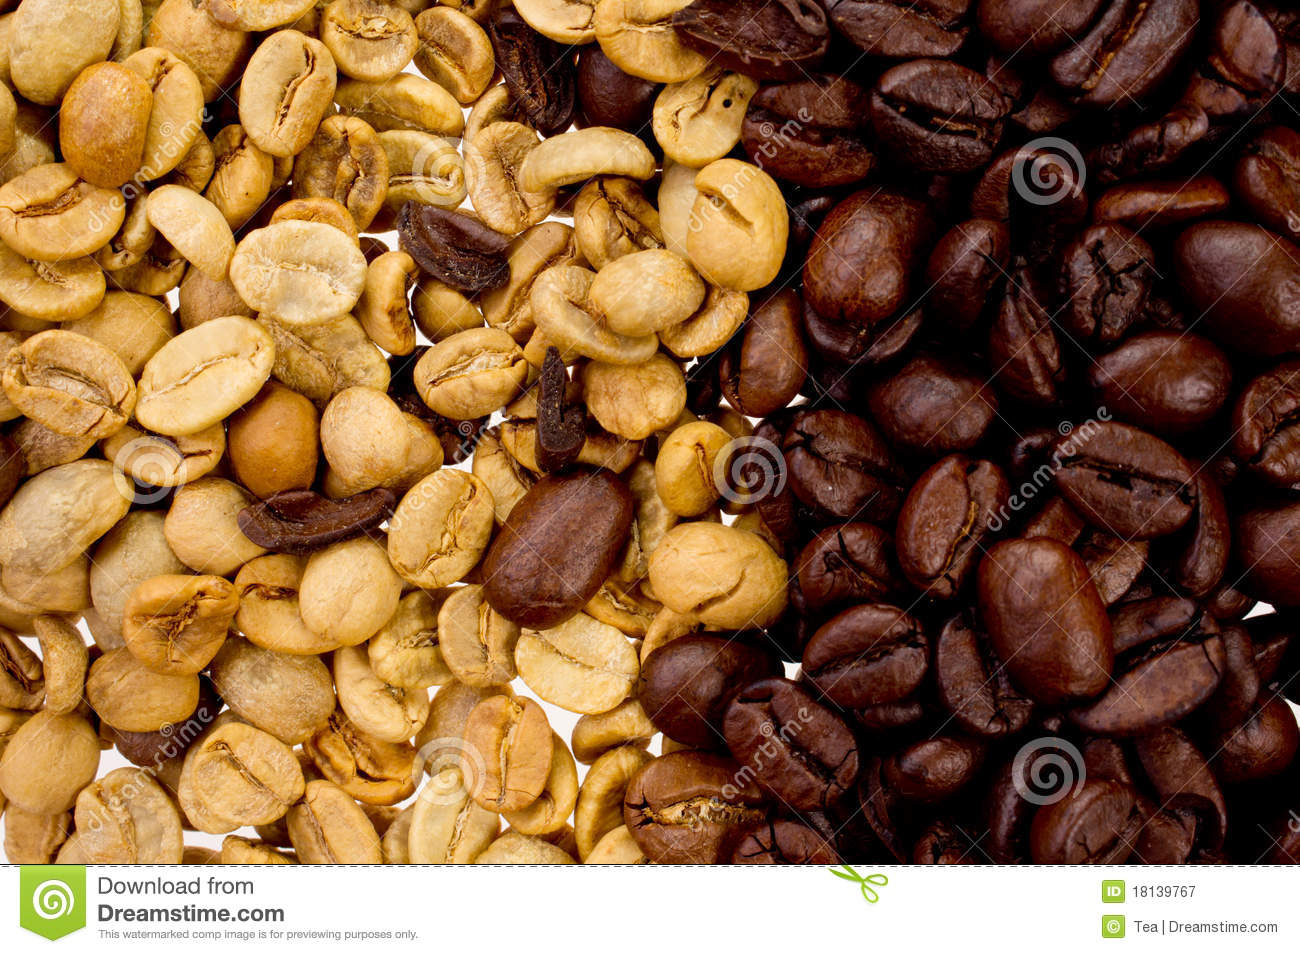 Roasted And Raw Coffee Beans Royalty Free Stock Photography